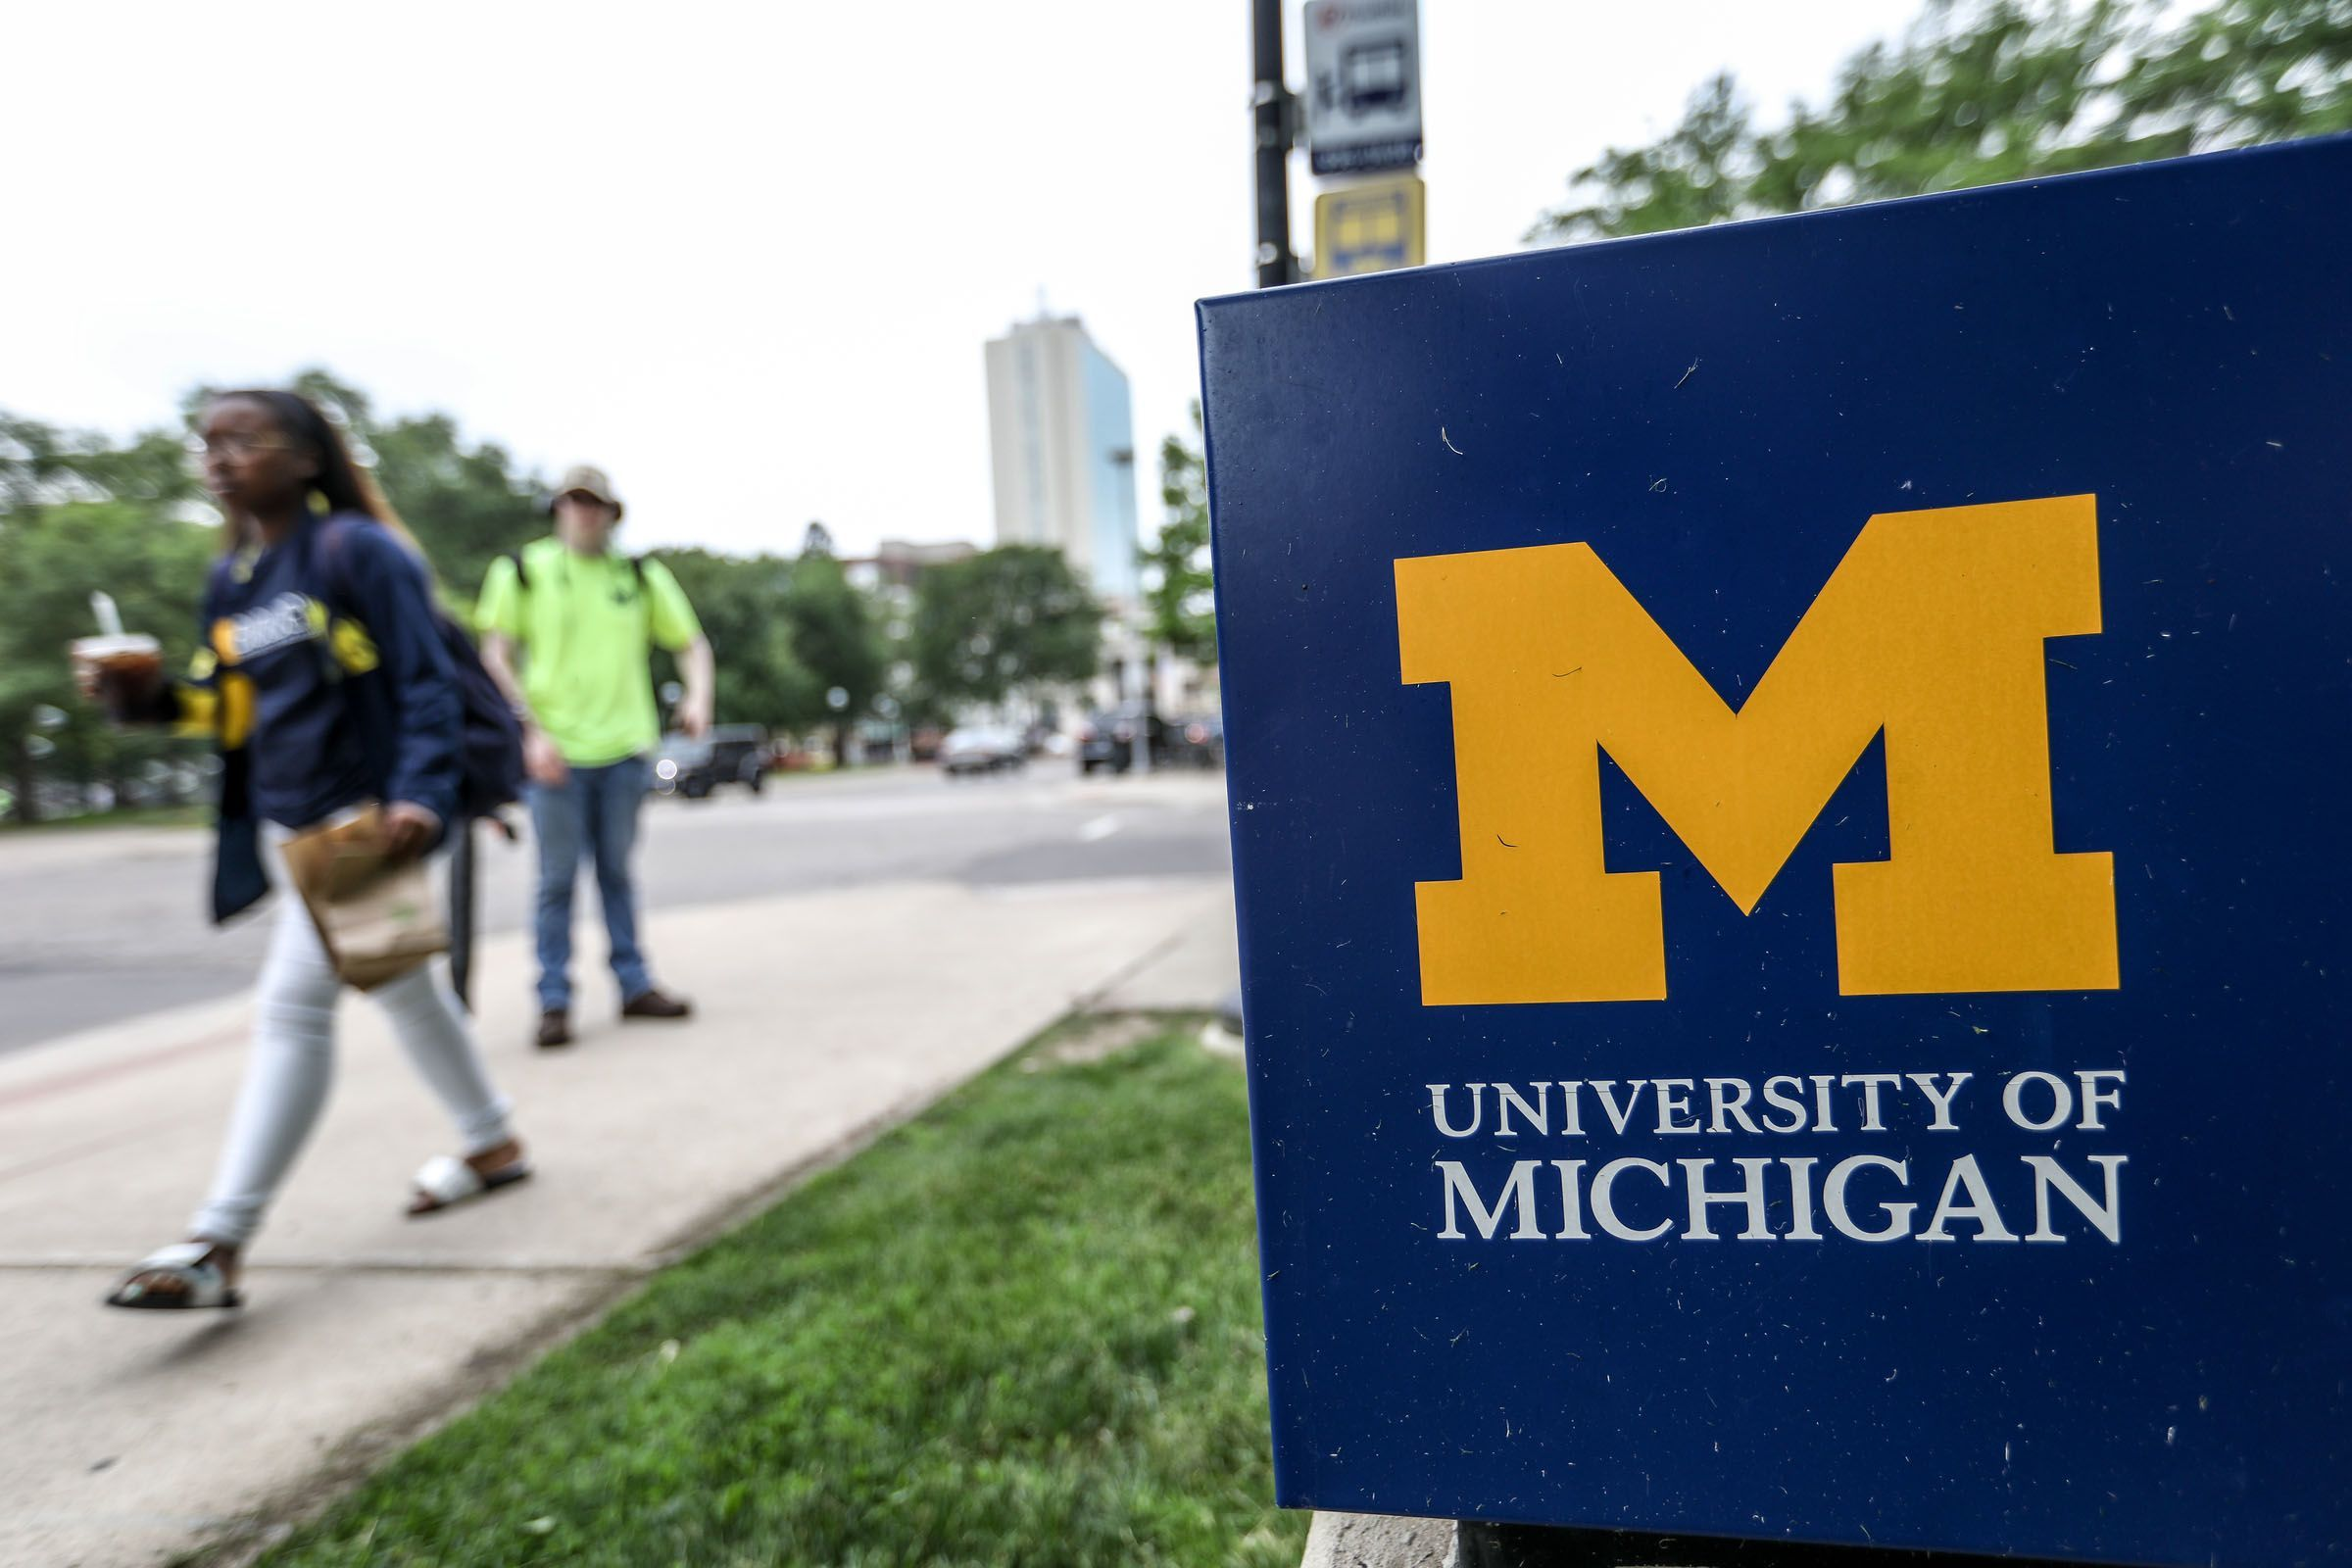 University of Michigan finds 3 venomous recluse spiders in a library basement